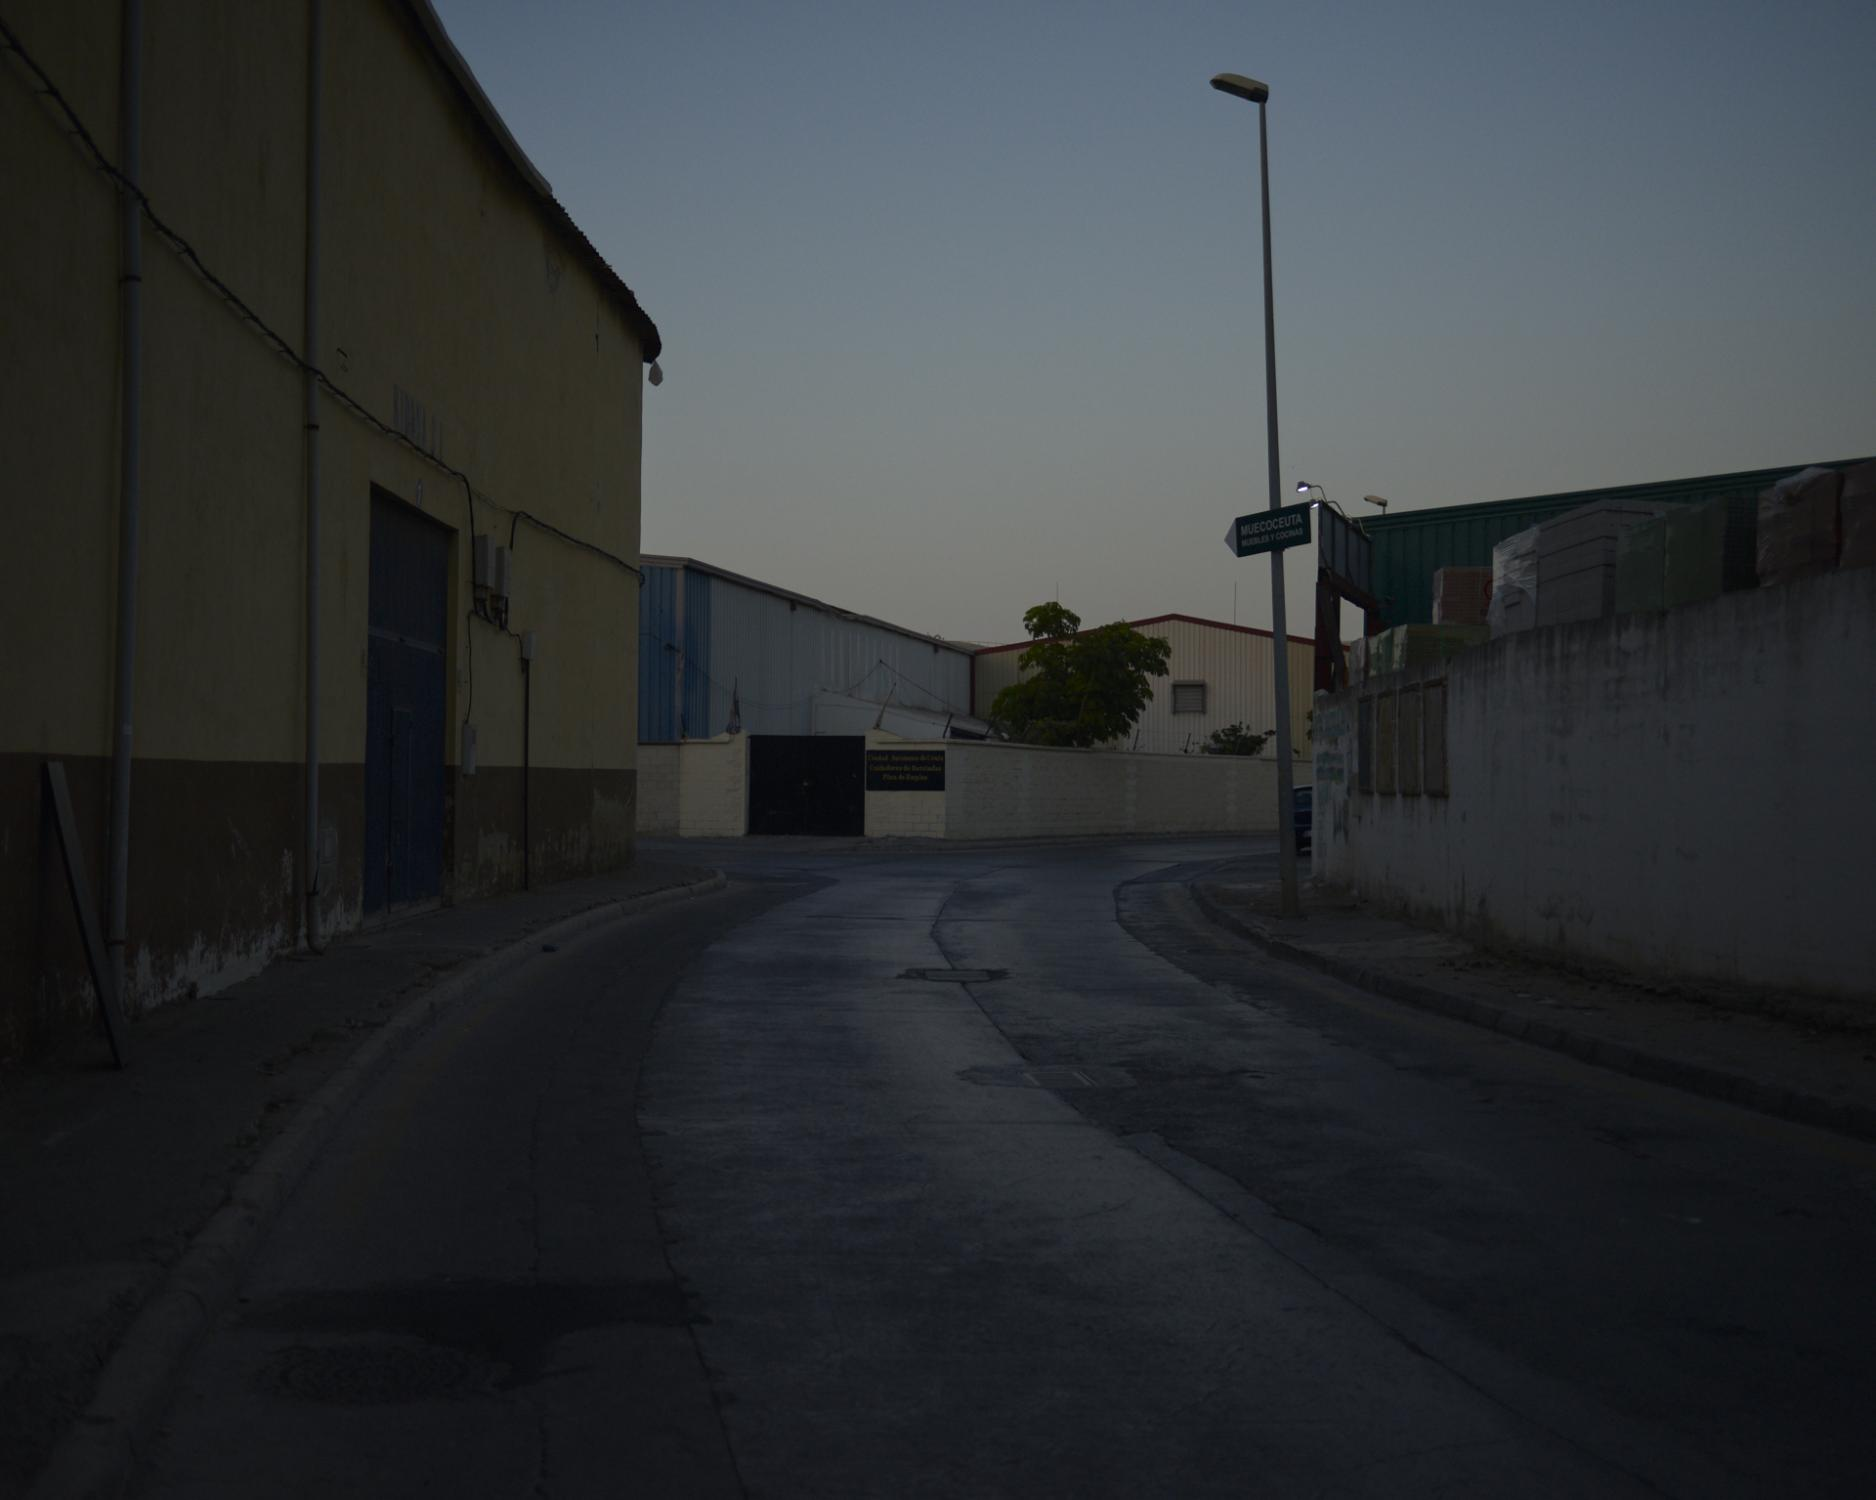 The streets of the industrial area, nearby the seawall. Ceuta, Spain, 2019.